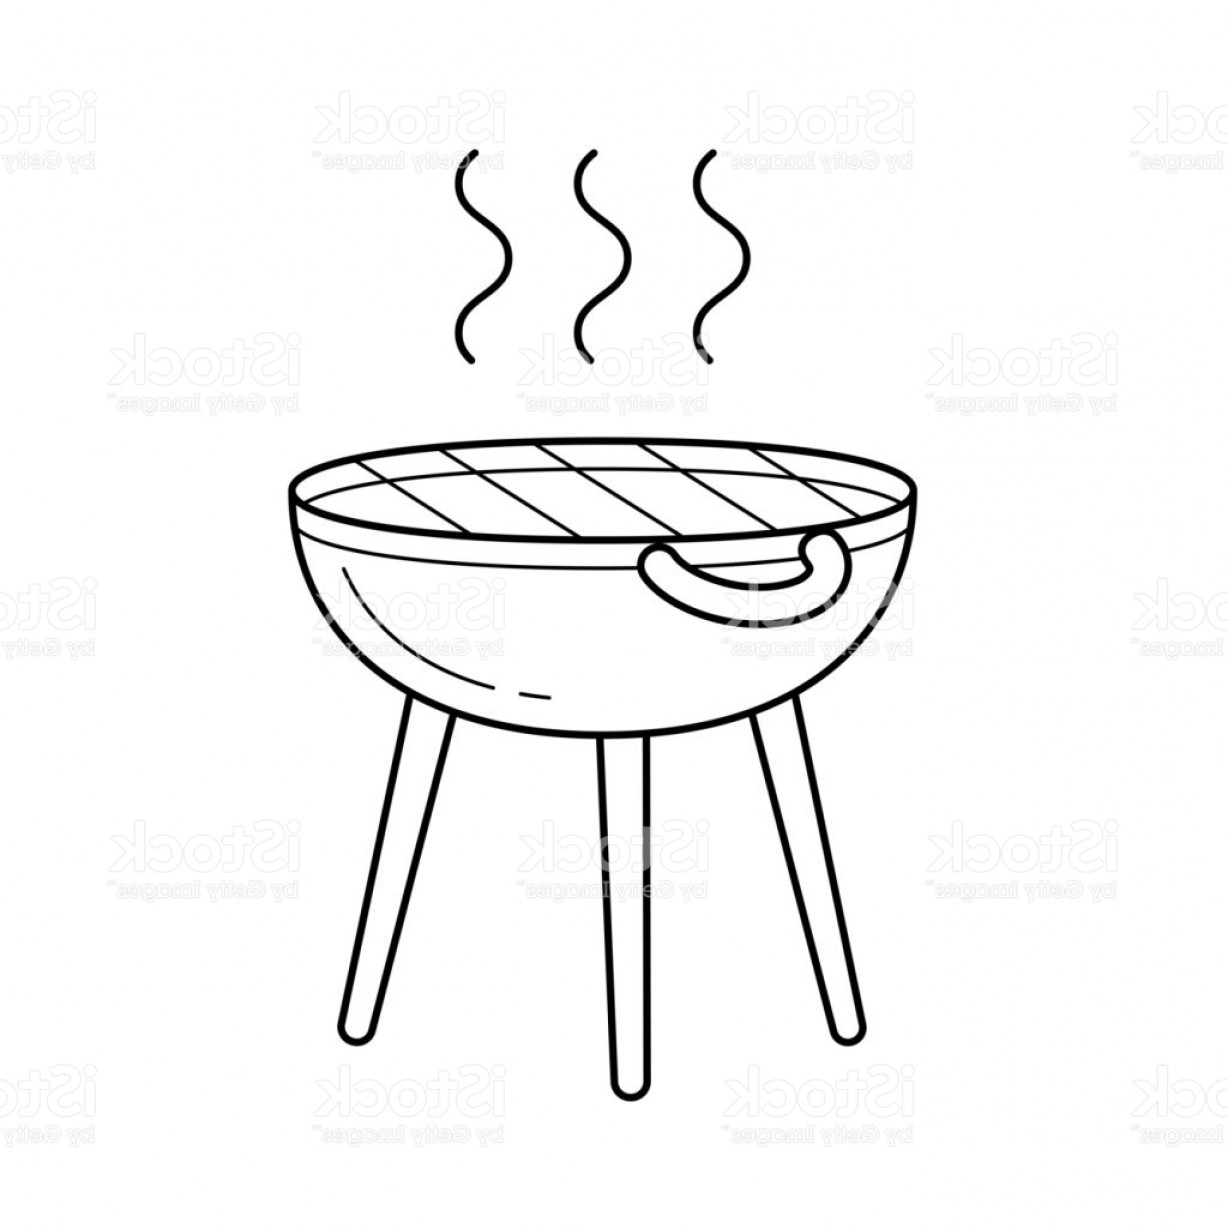 BBQ Grill Vector Black And White: Bbq Grill Vector Line Icon Gm